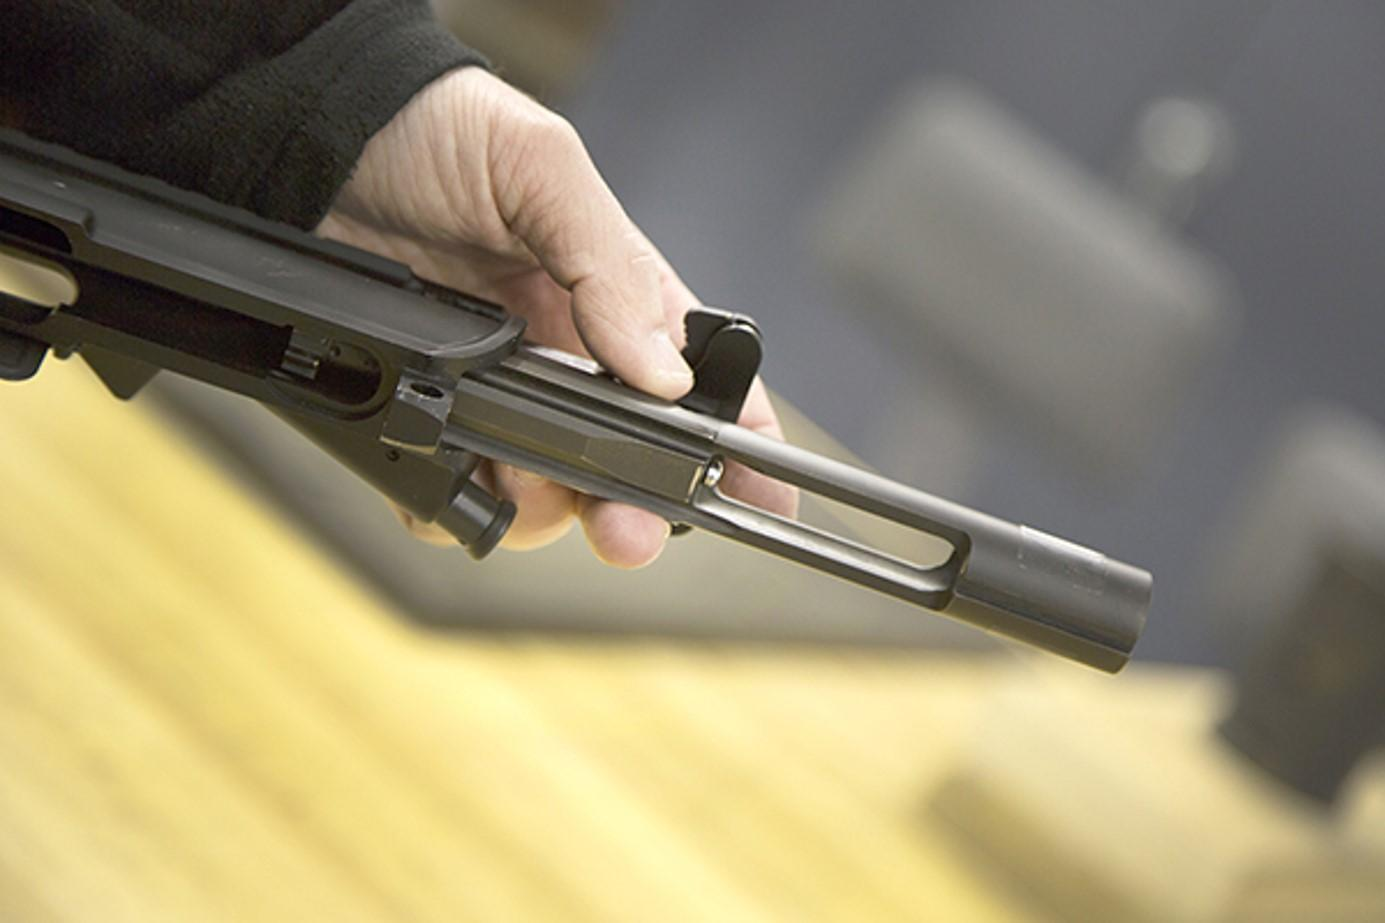 Covered with a durable solid lubricant, the bolt and bolt carrier assembly are inserted into a weapon's upper receiver